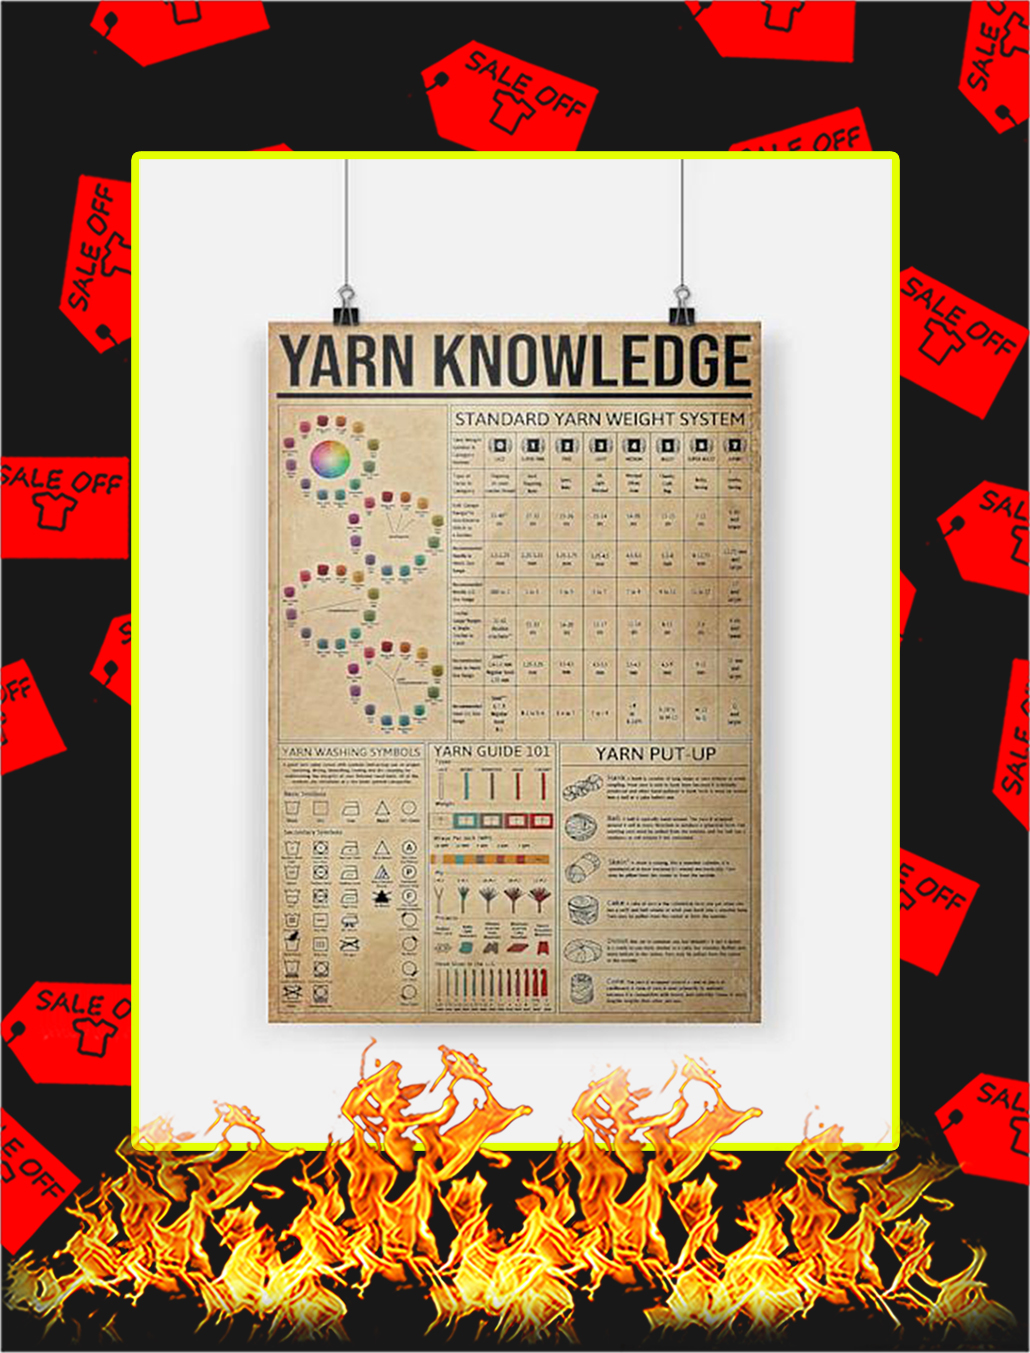 Yarn Knowledge Poster - A3